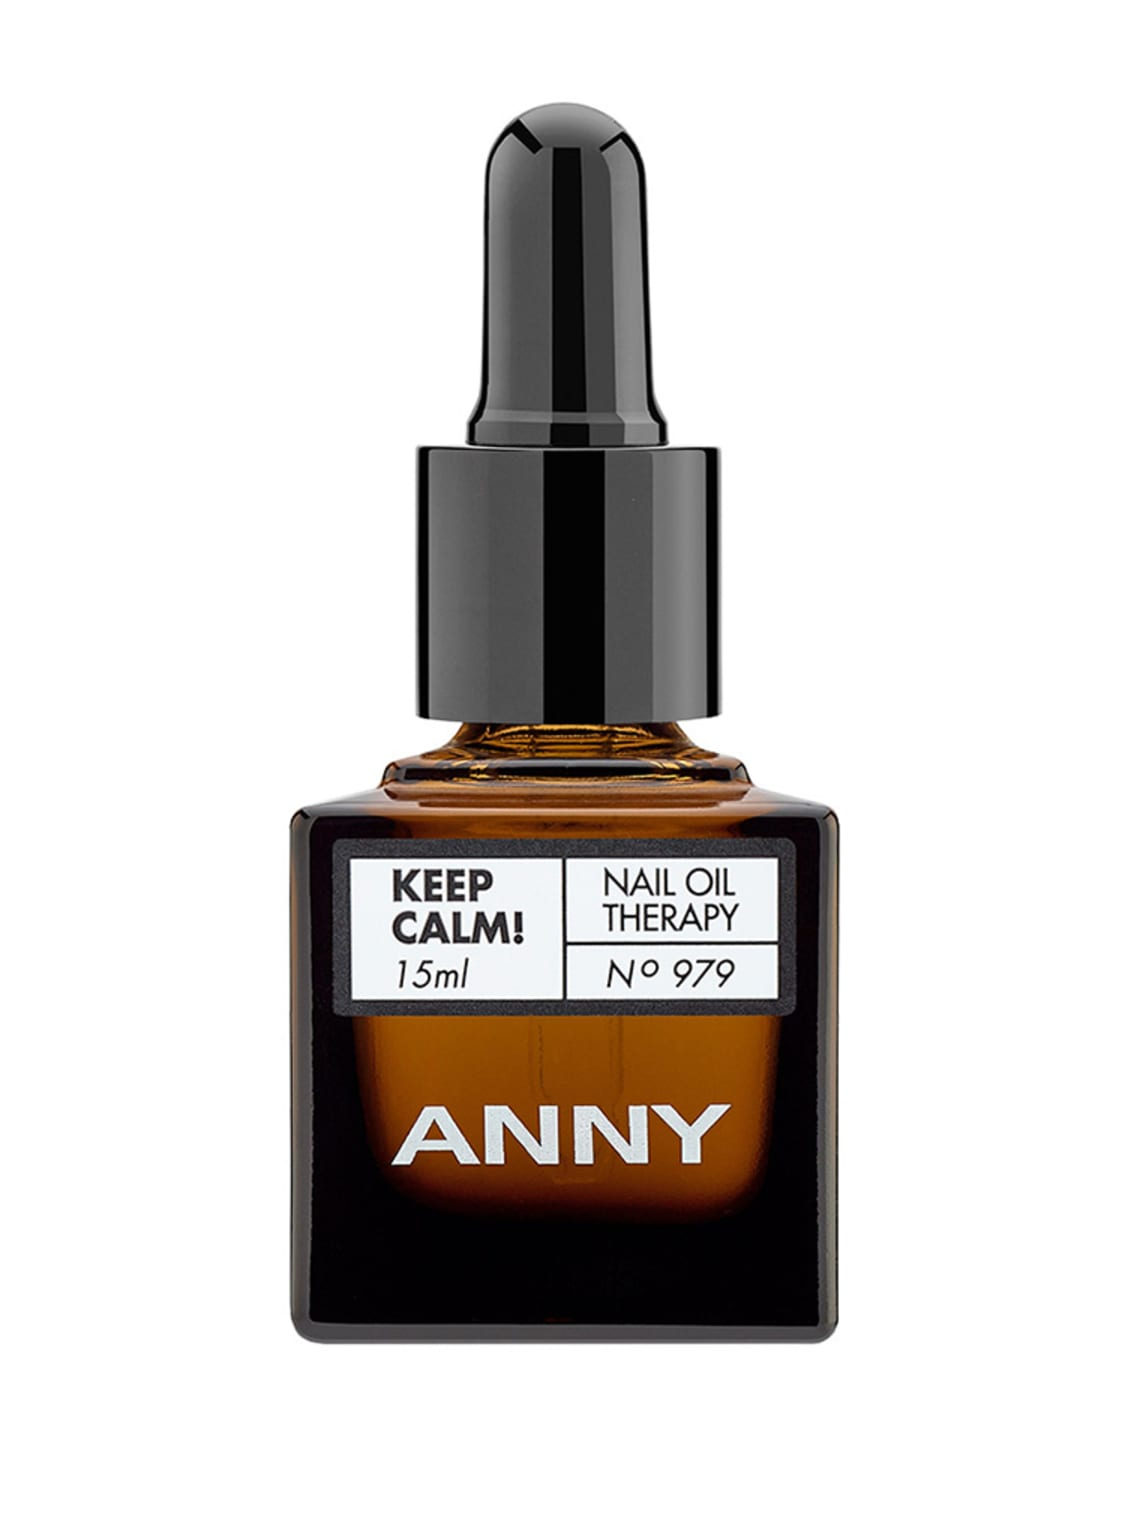 Image of Anny Keep Calm! Nail Oil Therapy Nagelöl 15 ml